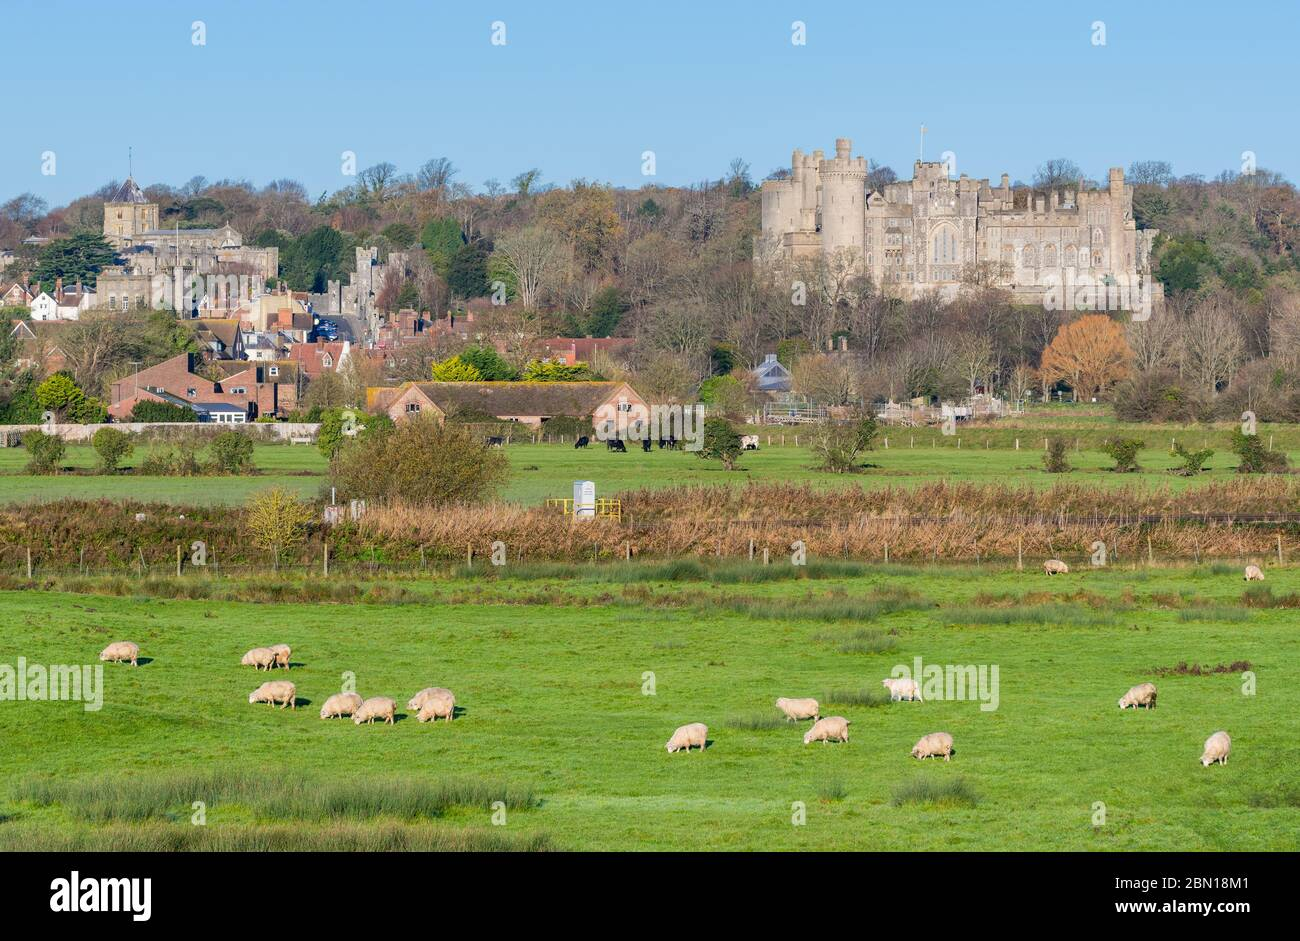 View of Arundel Castle with fields of sheep in the South Downs in Winter in West Sussex, England, UK. Arundel UK. Stock Photo